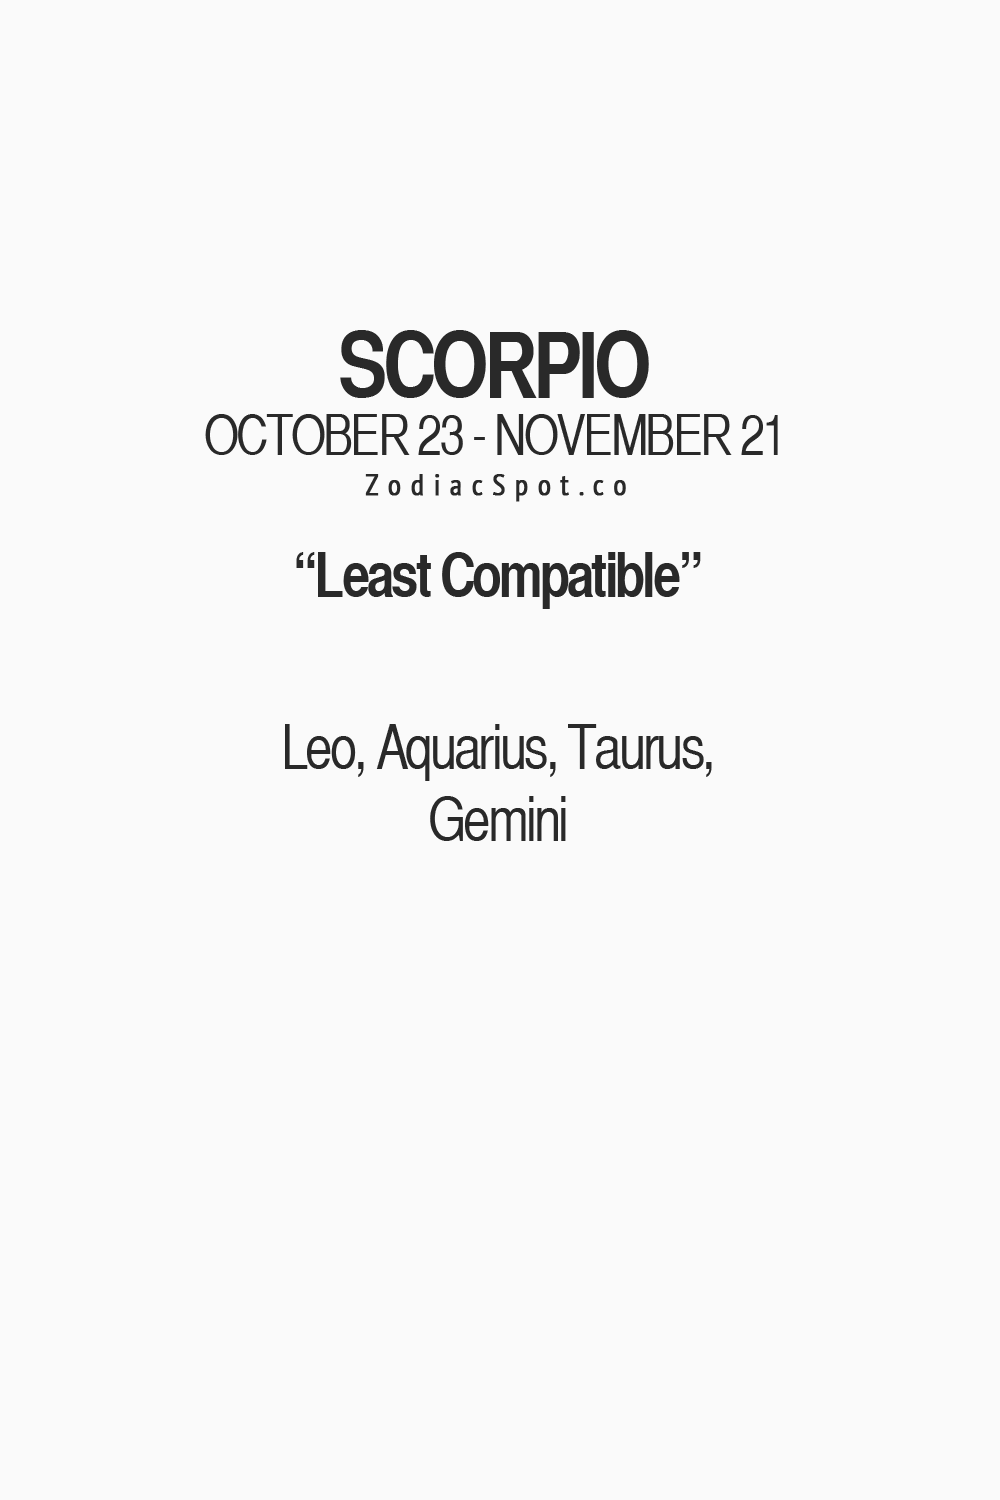 What Zodiac Sign Is Scorpio Most Compatible With